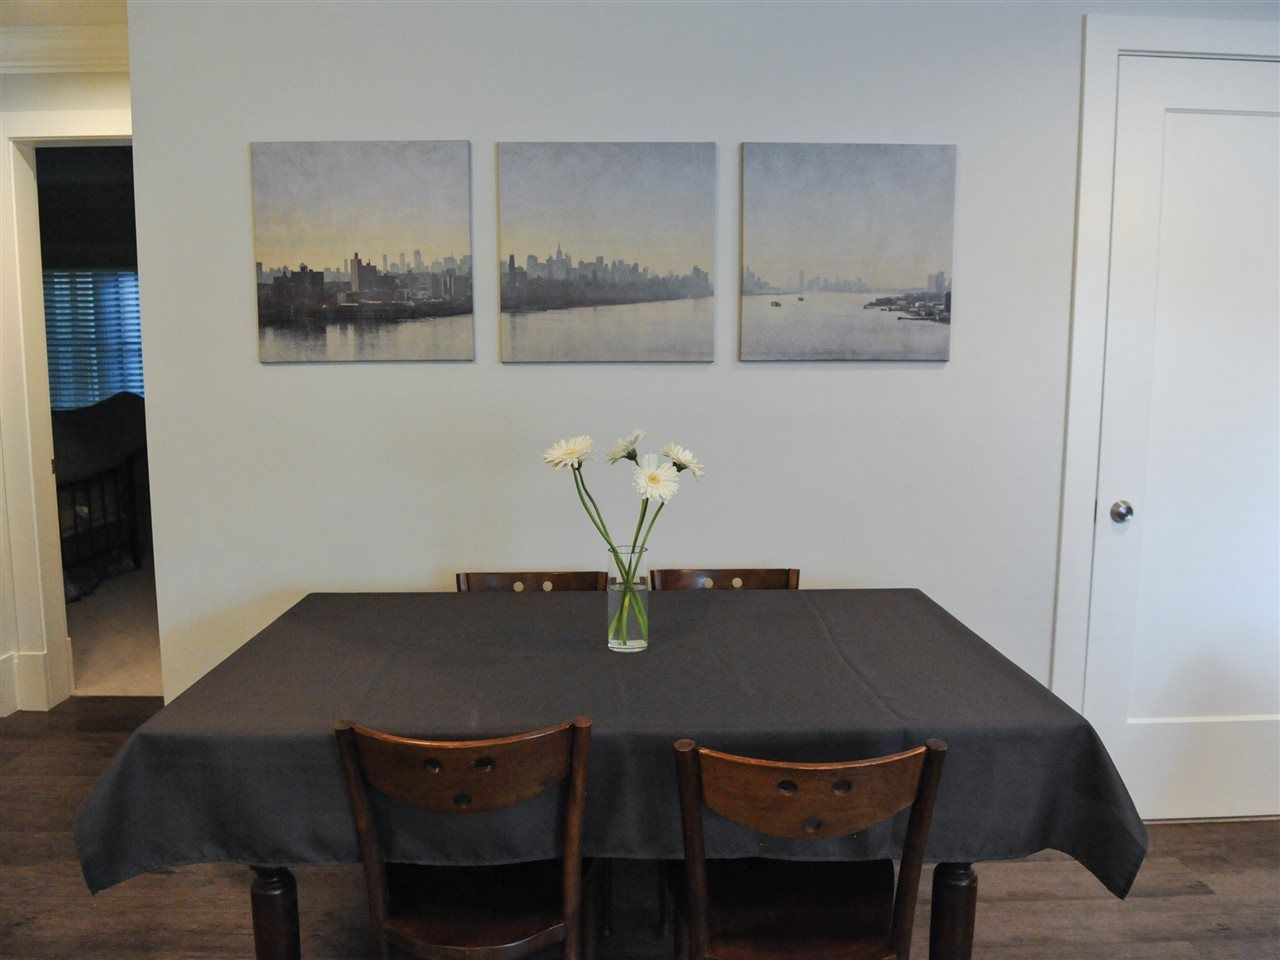 Photo 35: Photos: 7457 LABURNUM Street in Vancouver: S.W. Marine House for sale (Vancouver West)  : MLS®# R2507518